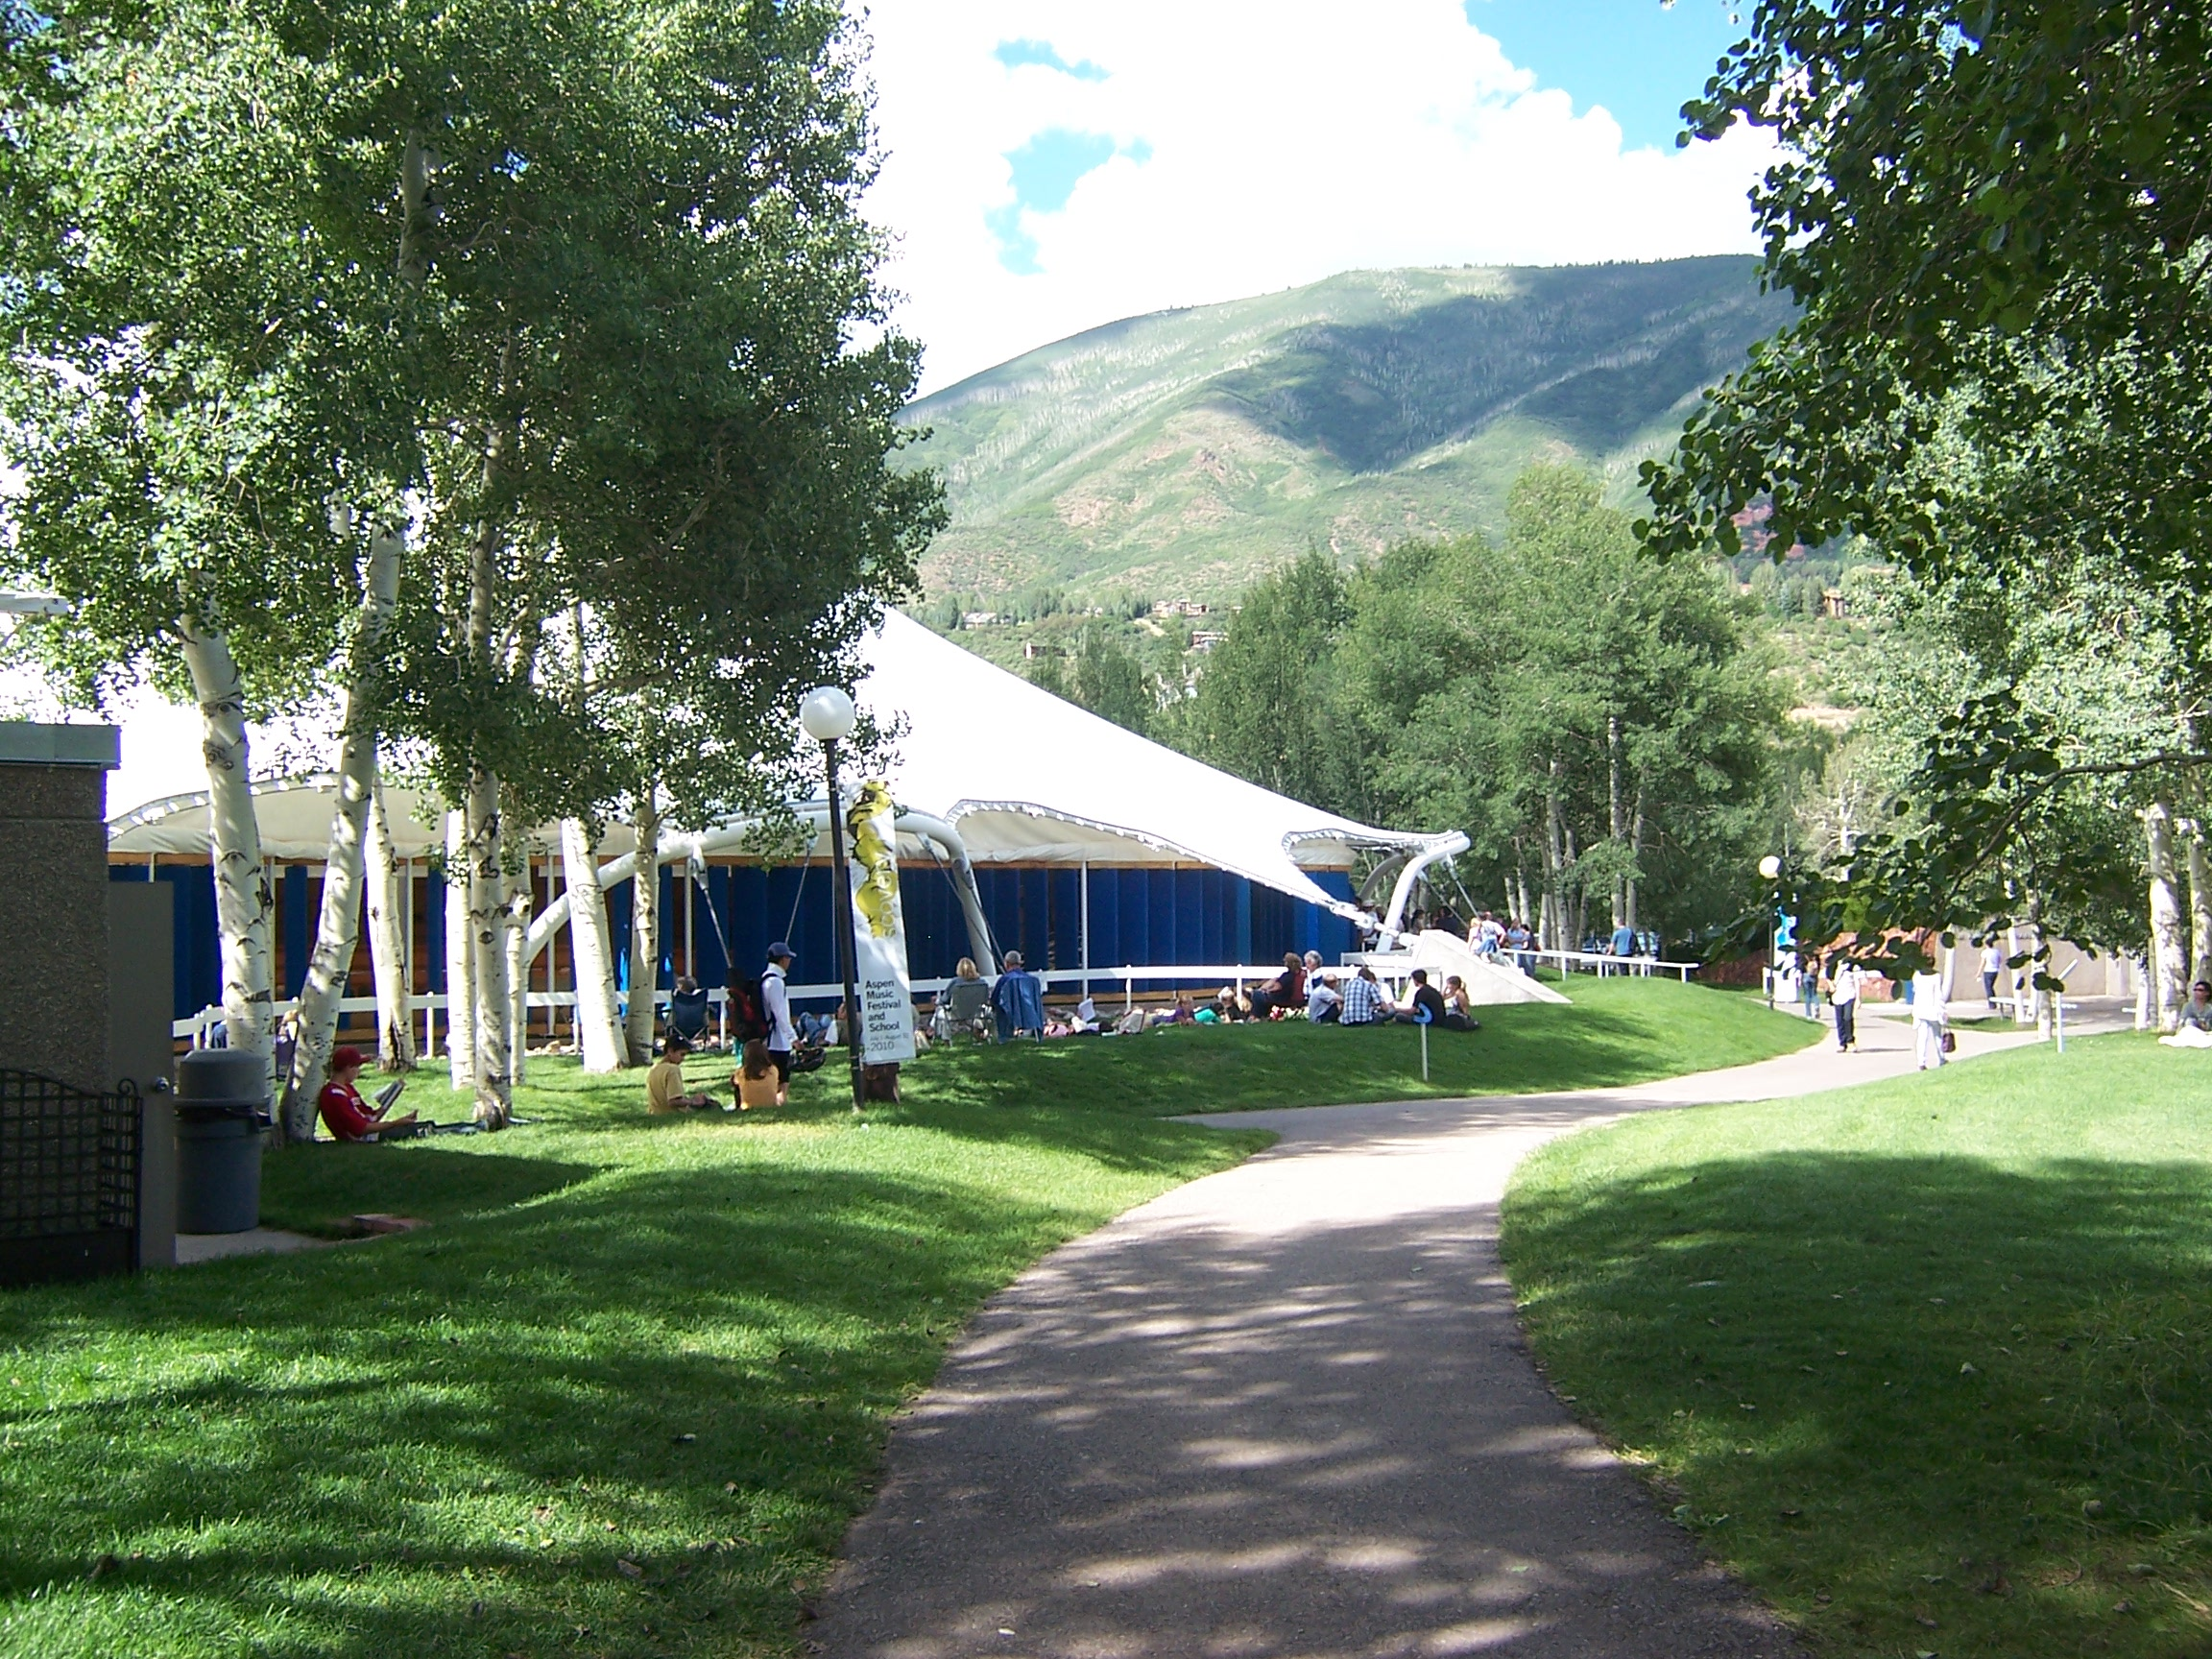 This Weekend at the Aspen Music Festival